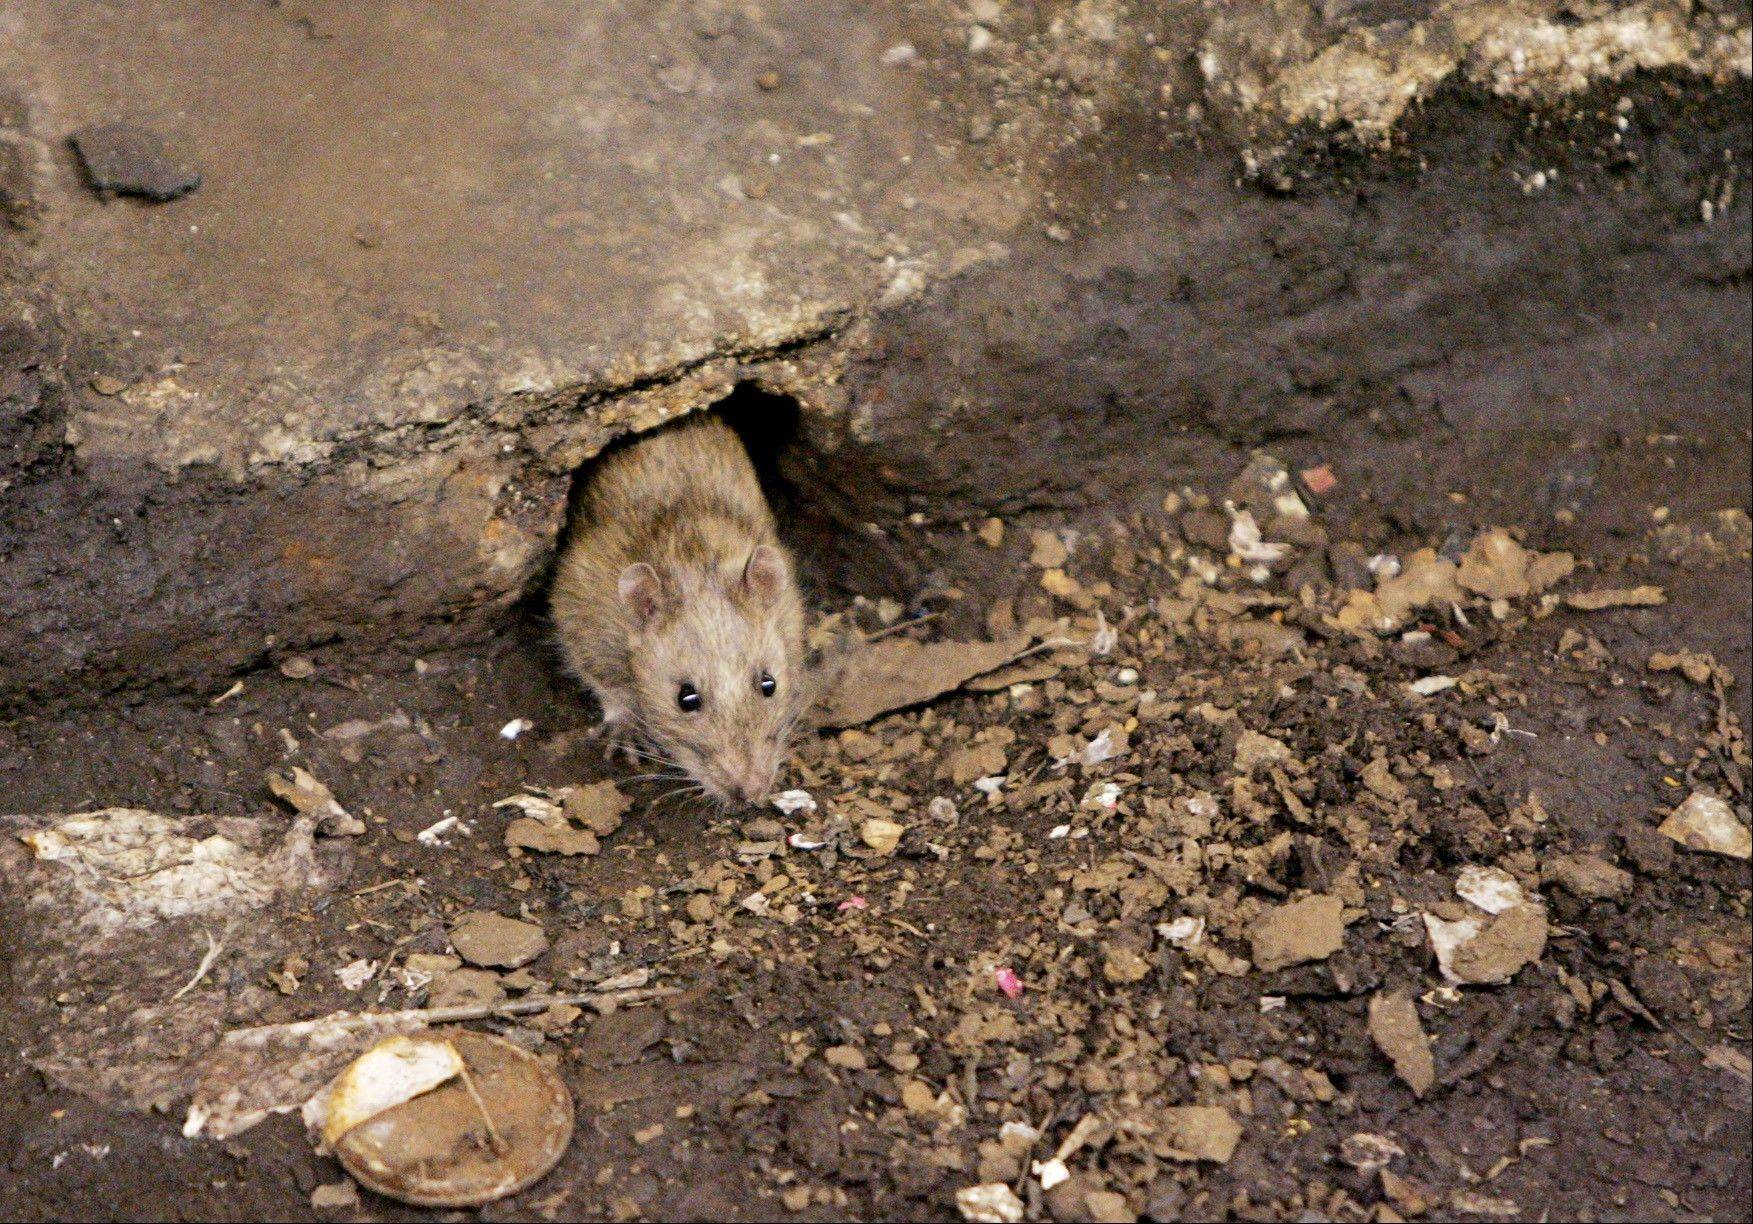 The New York City Council is considering a proposal to create an emergency rat mitigation program for storm-impacted neighborhoods. But some experts aren't so sure that Sandy's supposed rat surge is for real.